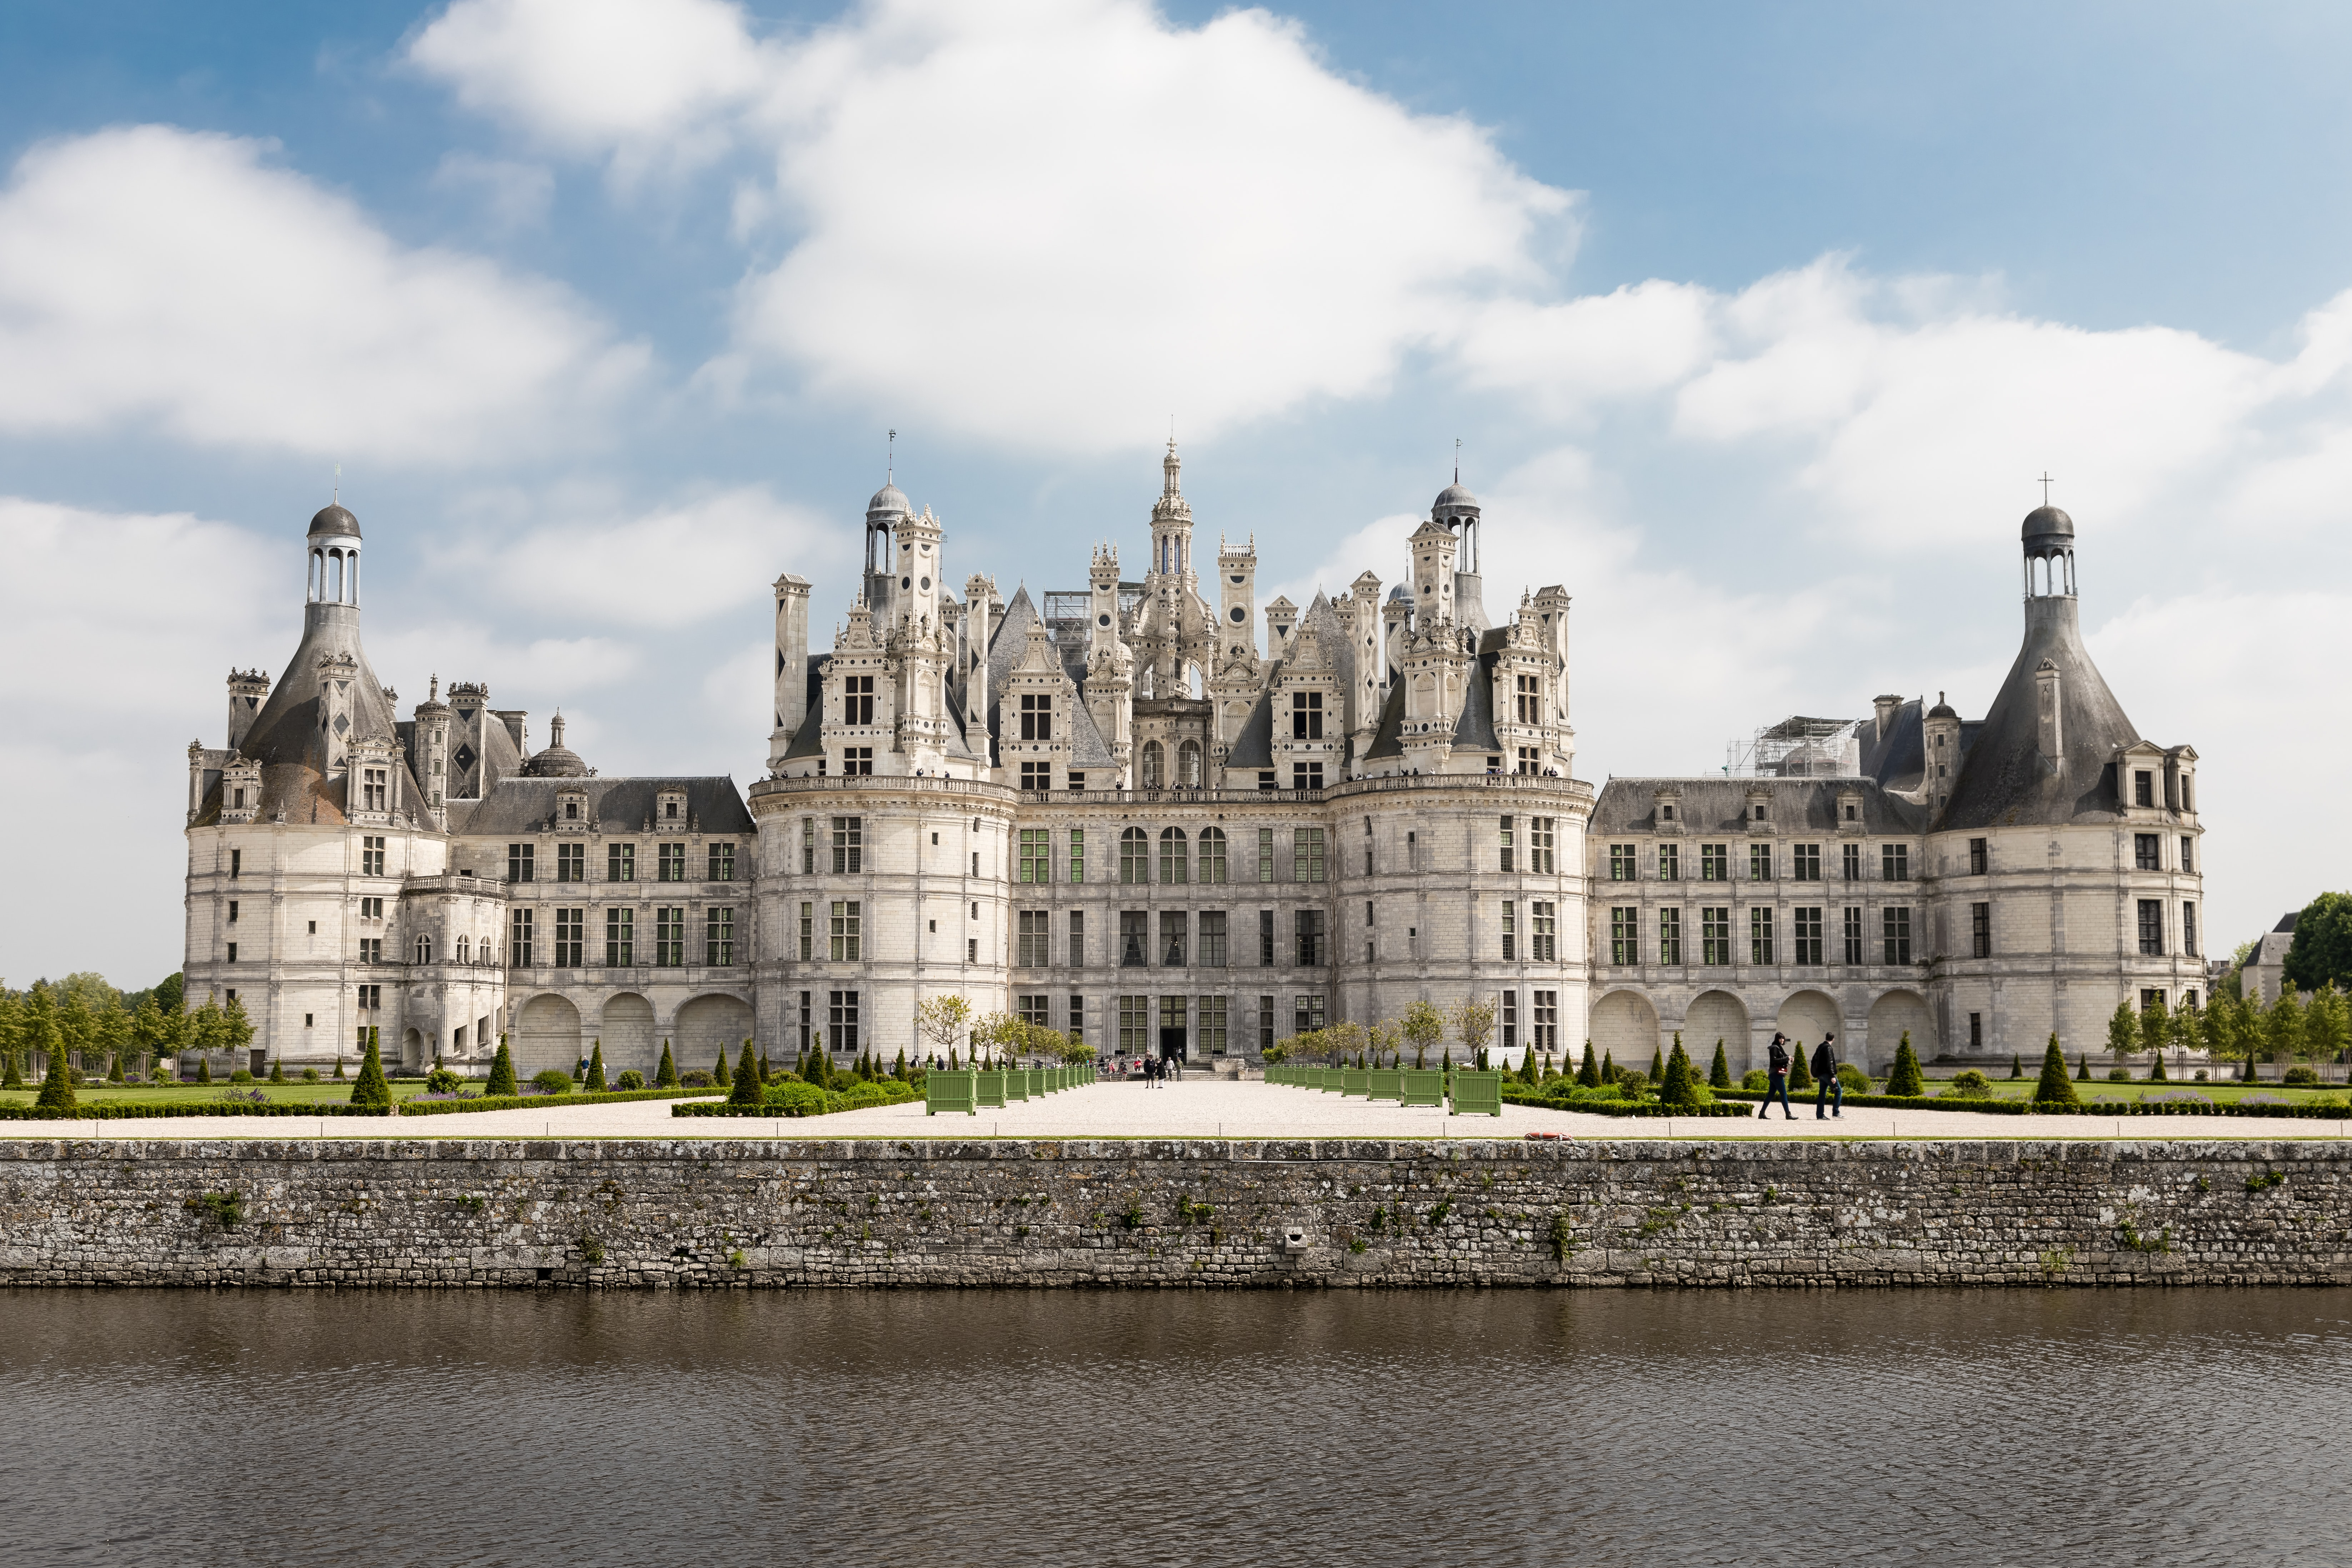 A massive white Renaissance French castle with gardens and water at the front